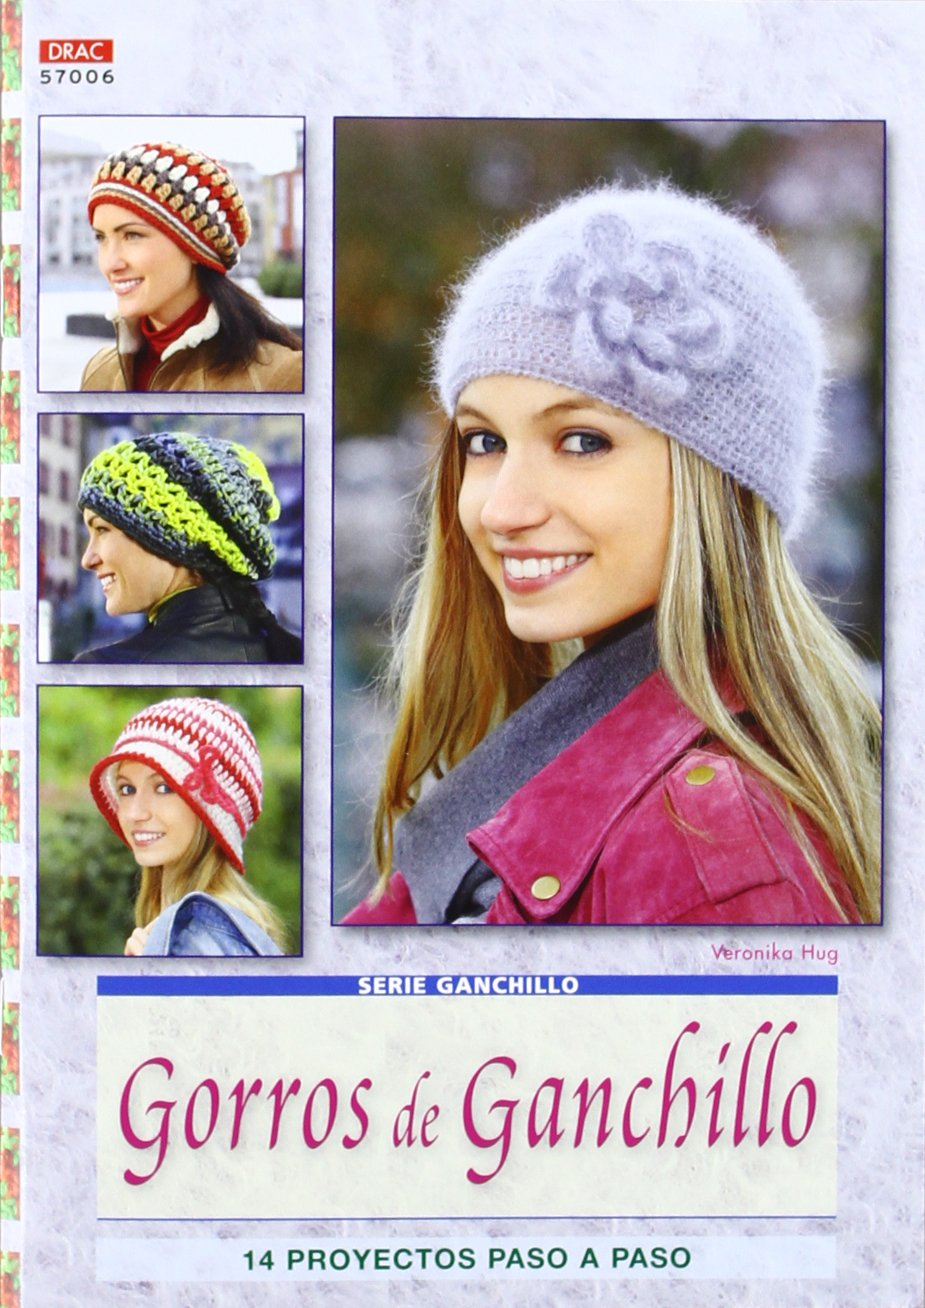 Gorros de ganchillo / Crochet Hats: 14 proyectos paso a paso / 14 Step by Step Projects (Crea con patrones; Serie: Ganchillo) (Spanish Edition) (Spanish) ...